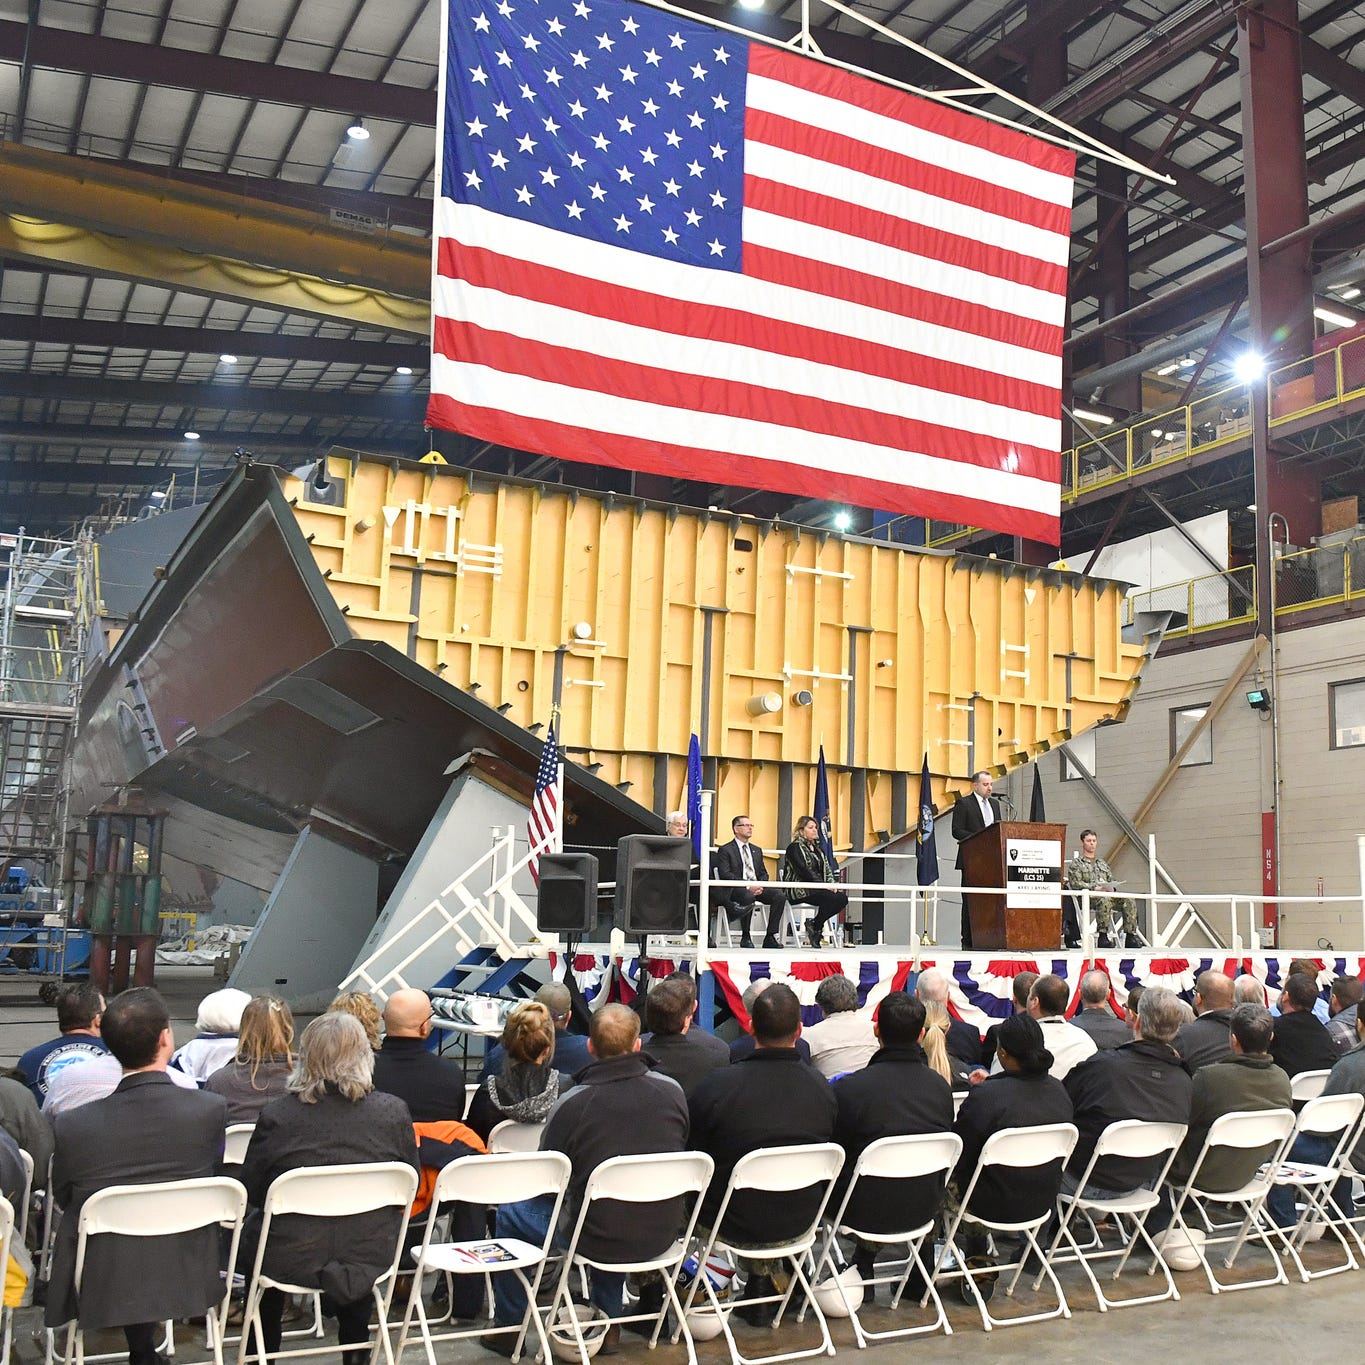 Marinette Marine's latest U.S. Navy littoral combat ship will carry city's name